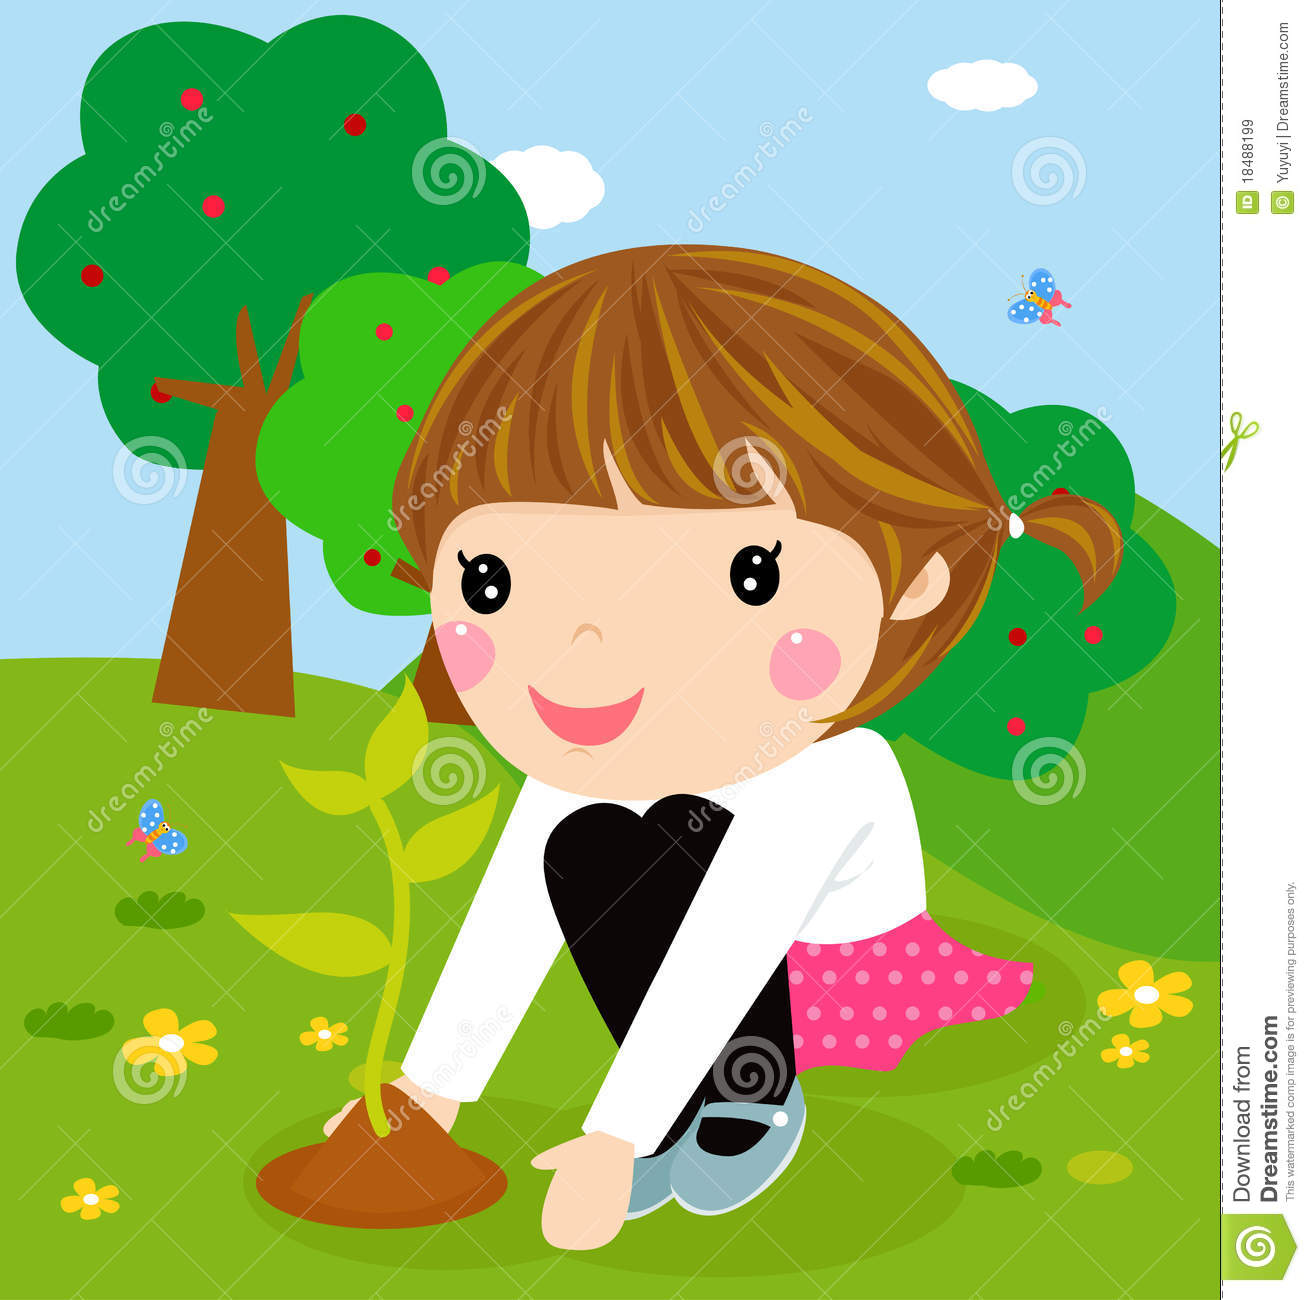 Spring flowers clipart clipart kid - Happy Kid Is Planting Small Plants Royalty Free Stock Images Image